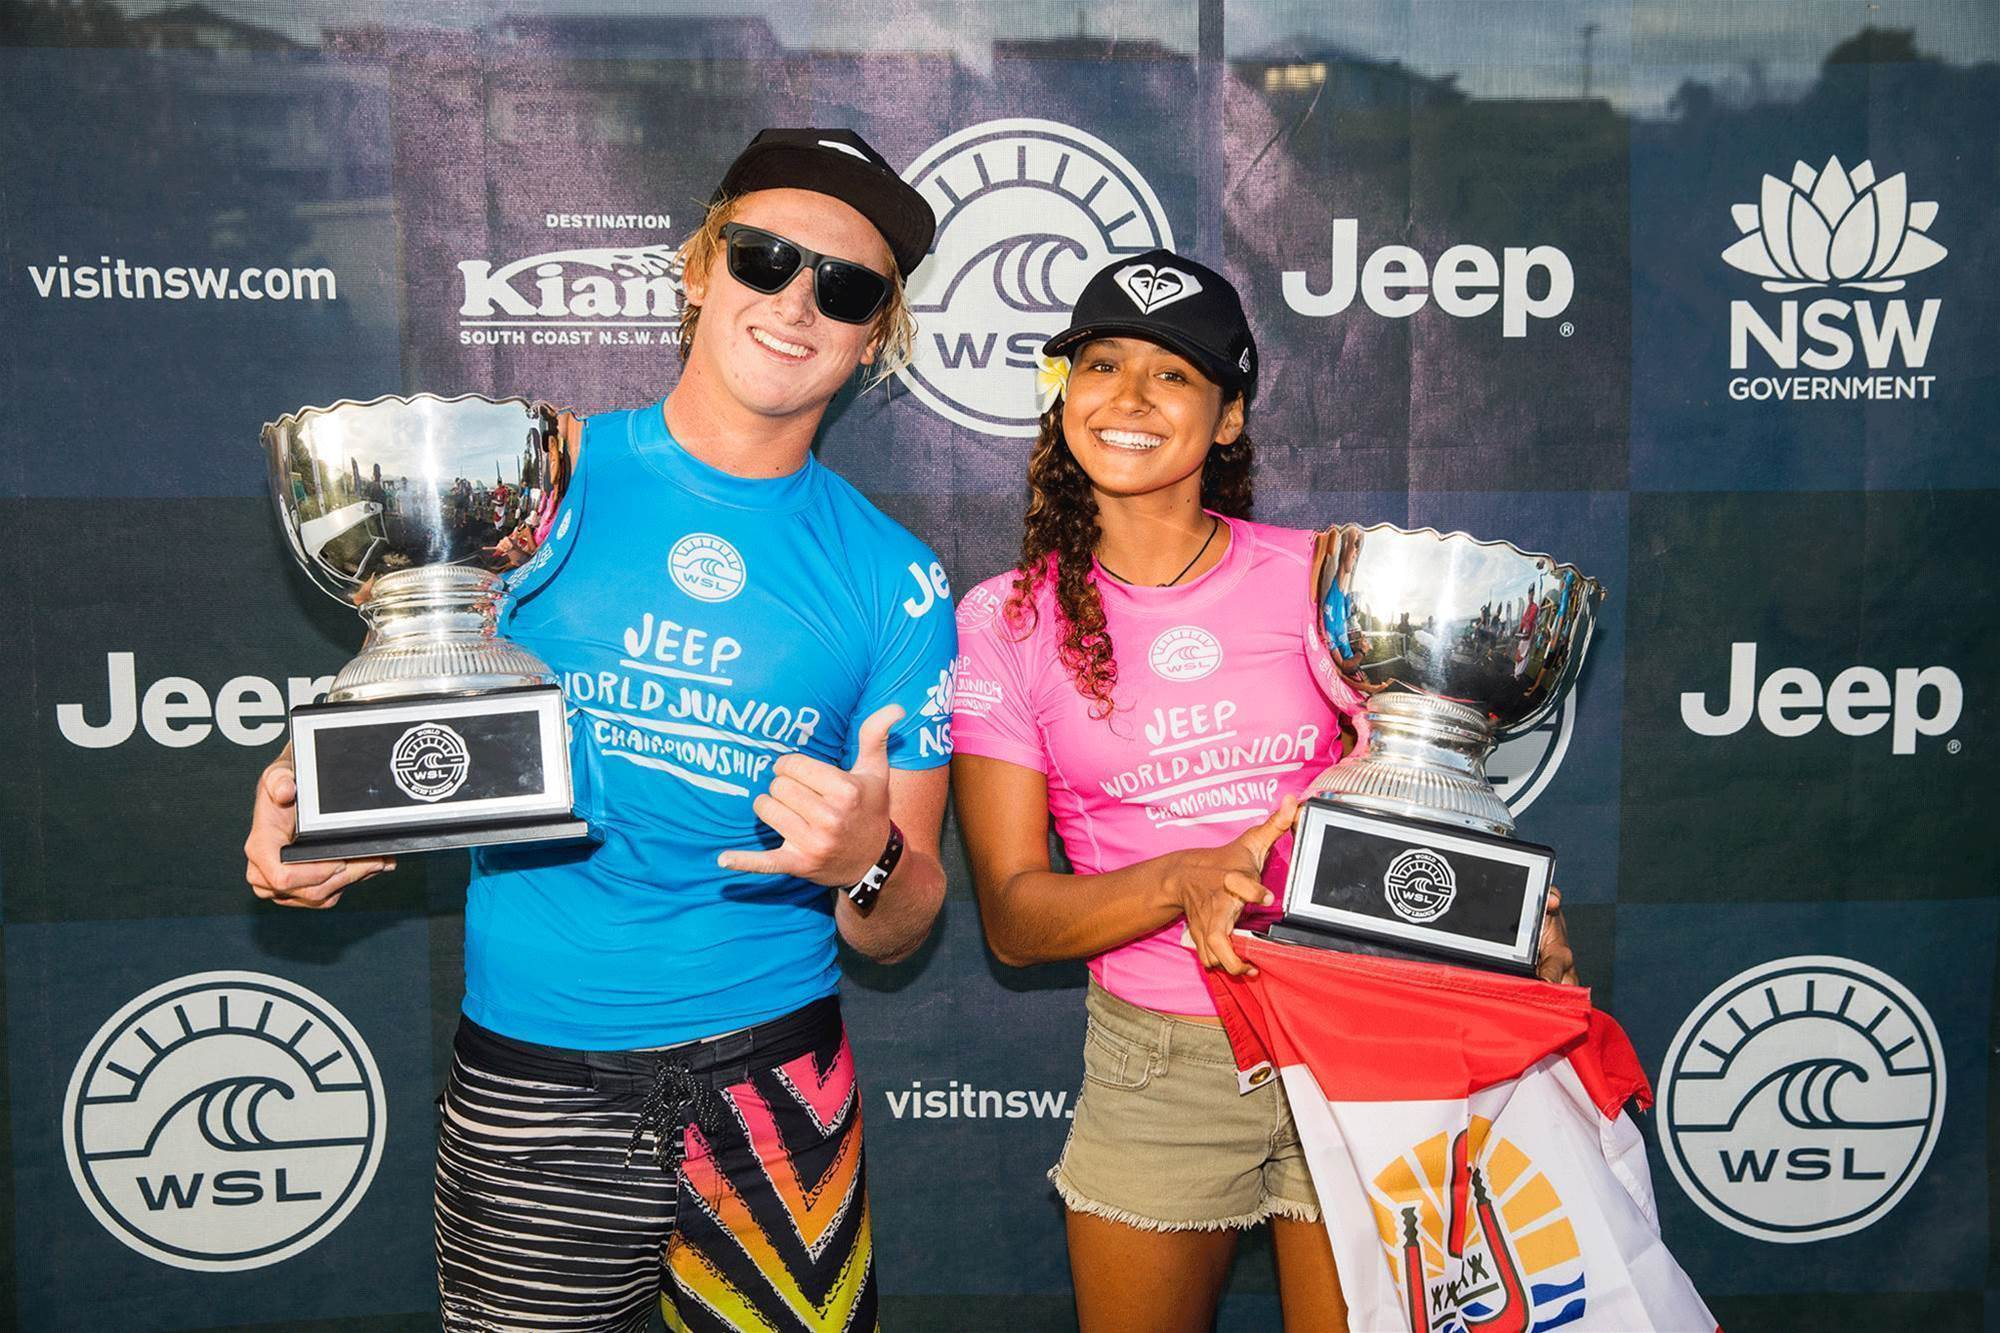 Island Fever at the World Pro Juniors